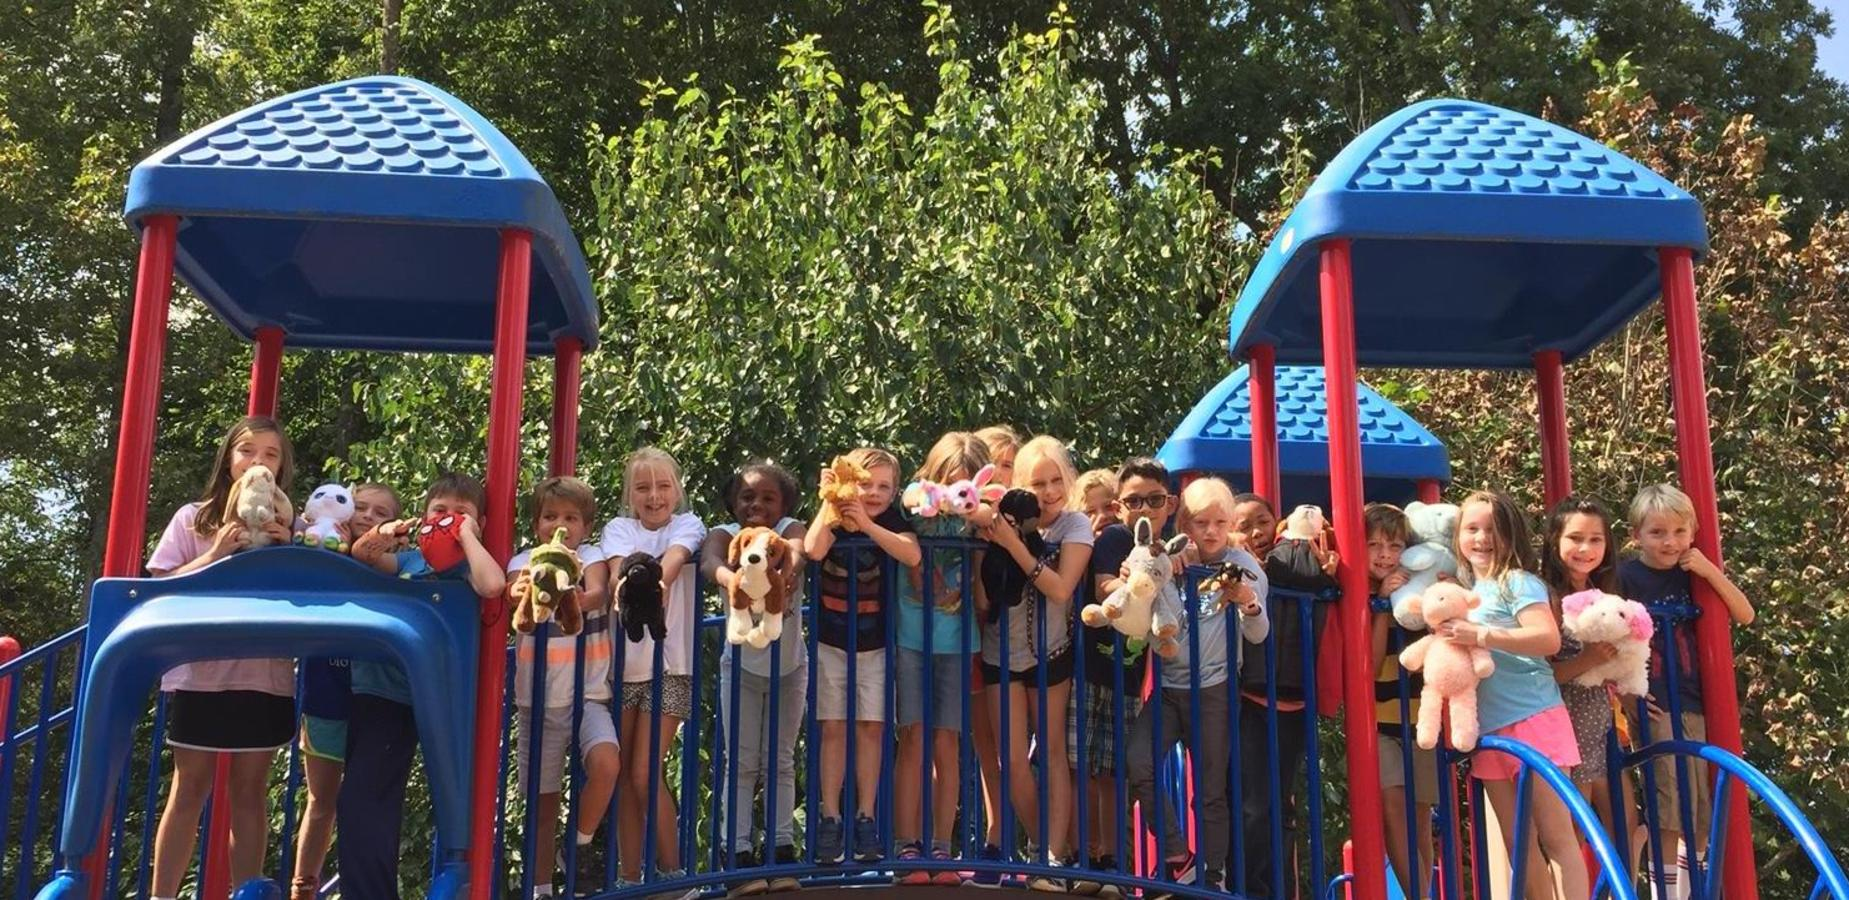 Students holding stuffed animals on the playground